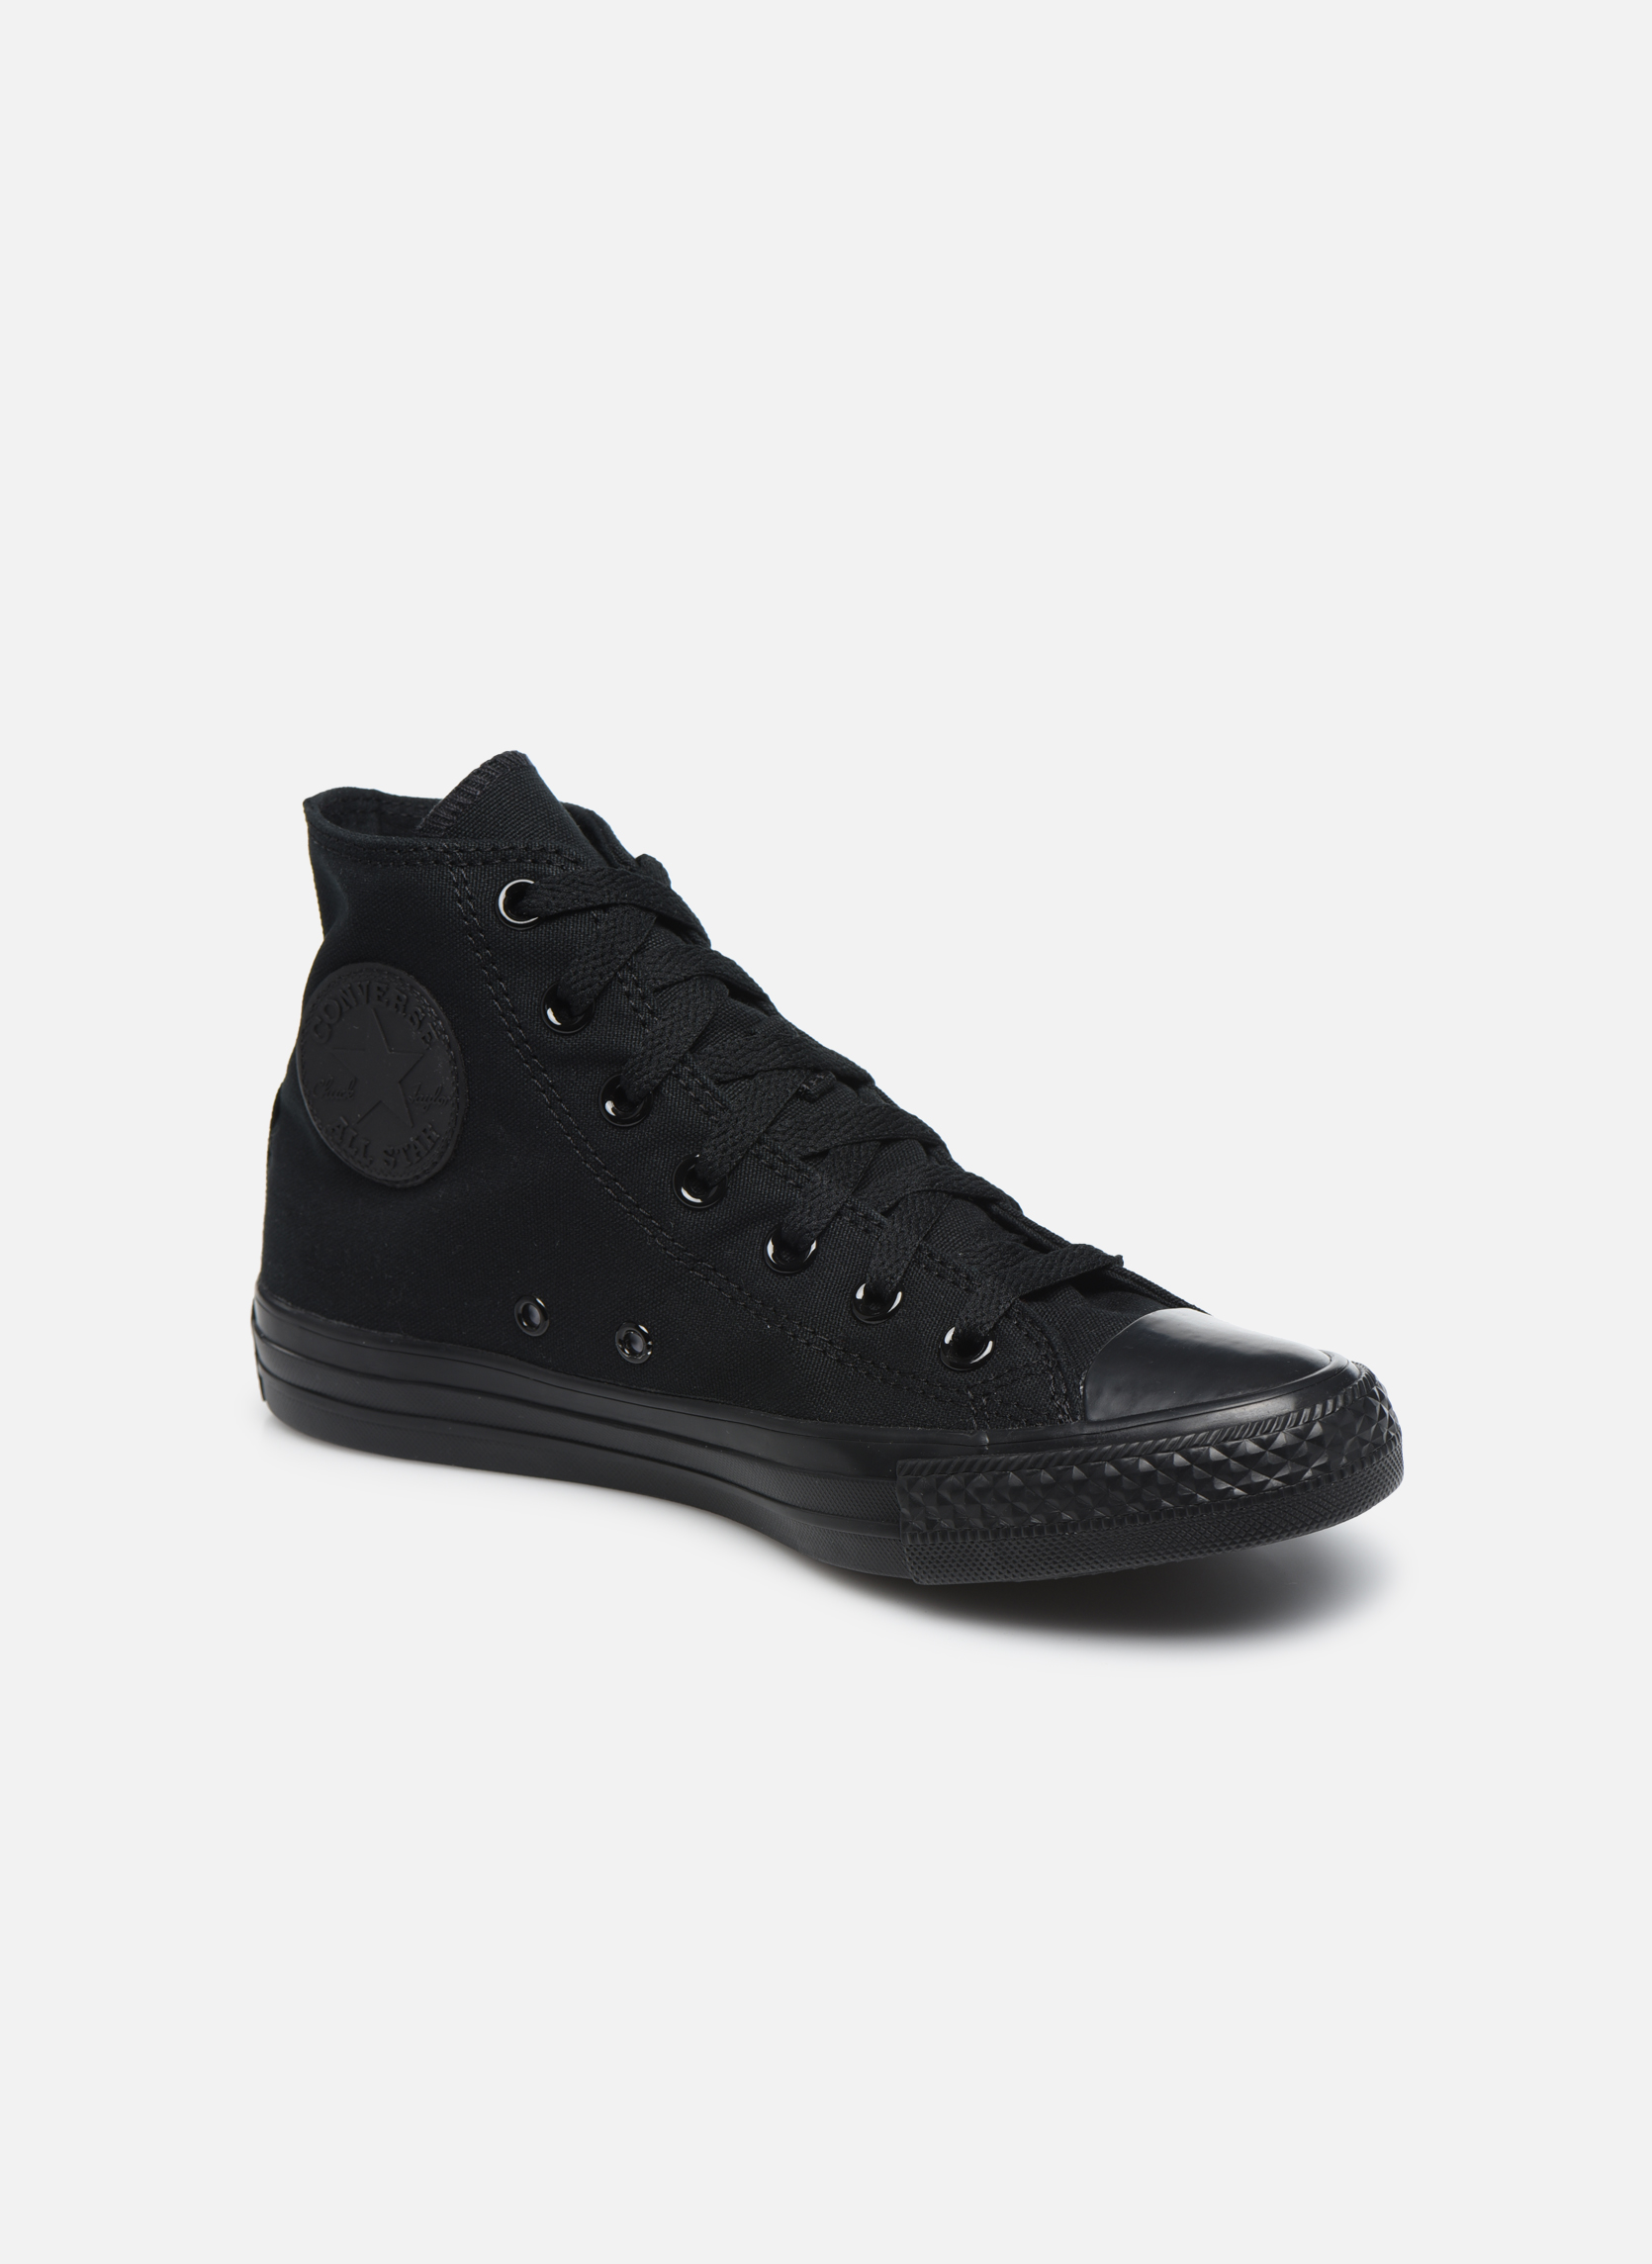 Sneakers Converse Chuck Taylor All Star Monochrome Canvas Hi W Sort detaljeret billede af skoene